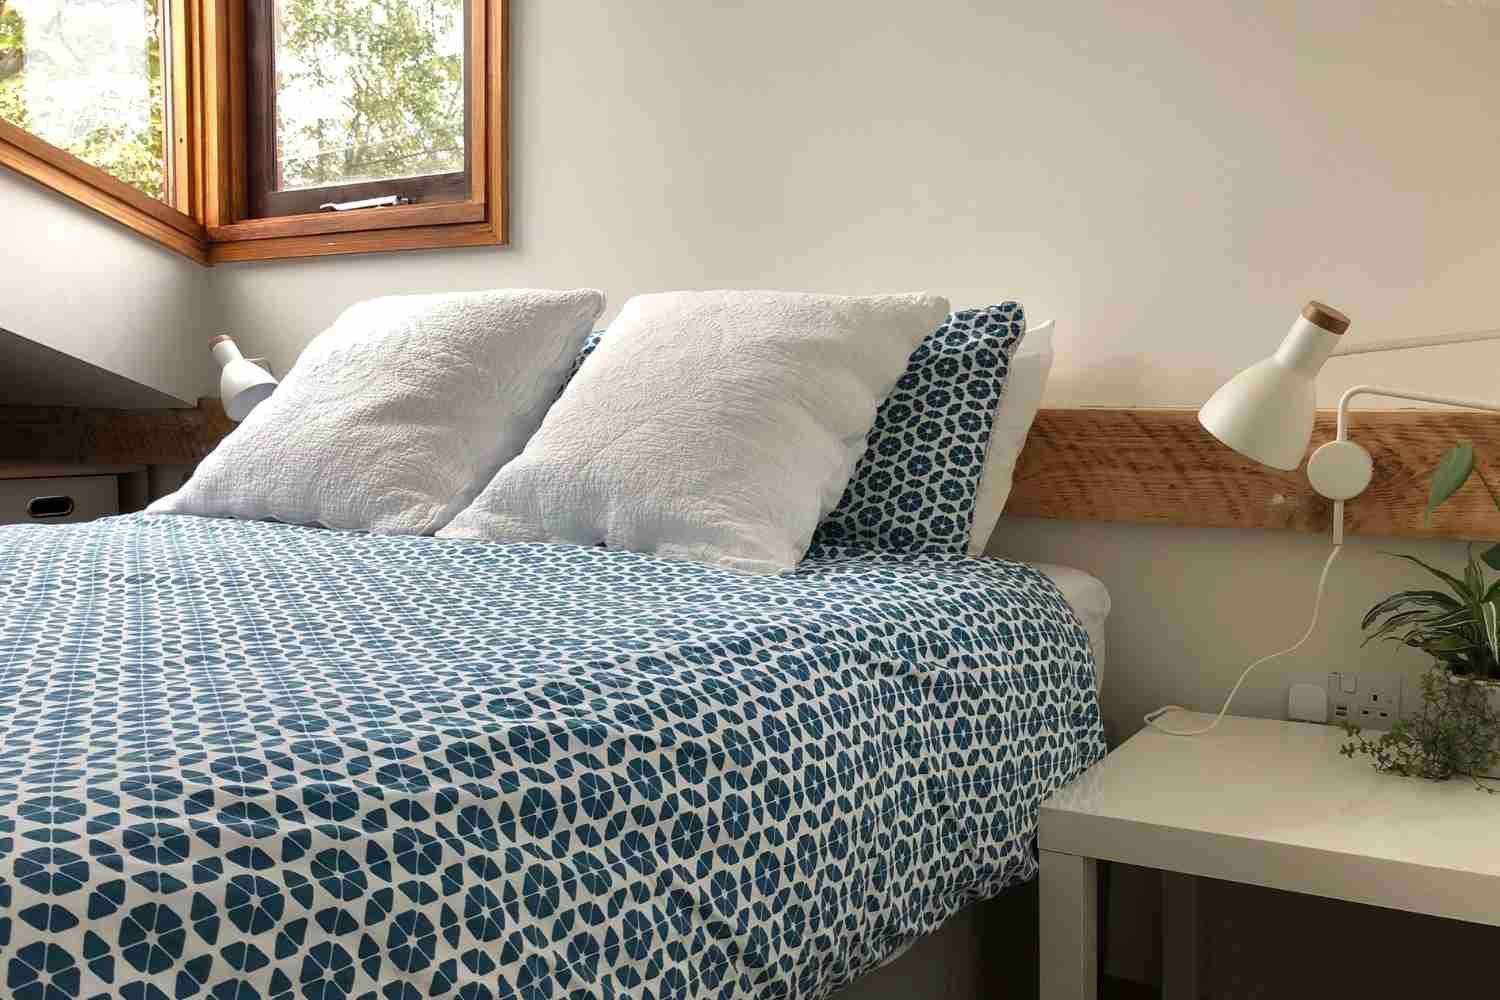 Bedroom One - simply but imaginatively styled